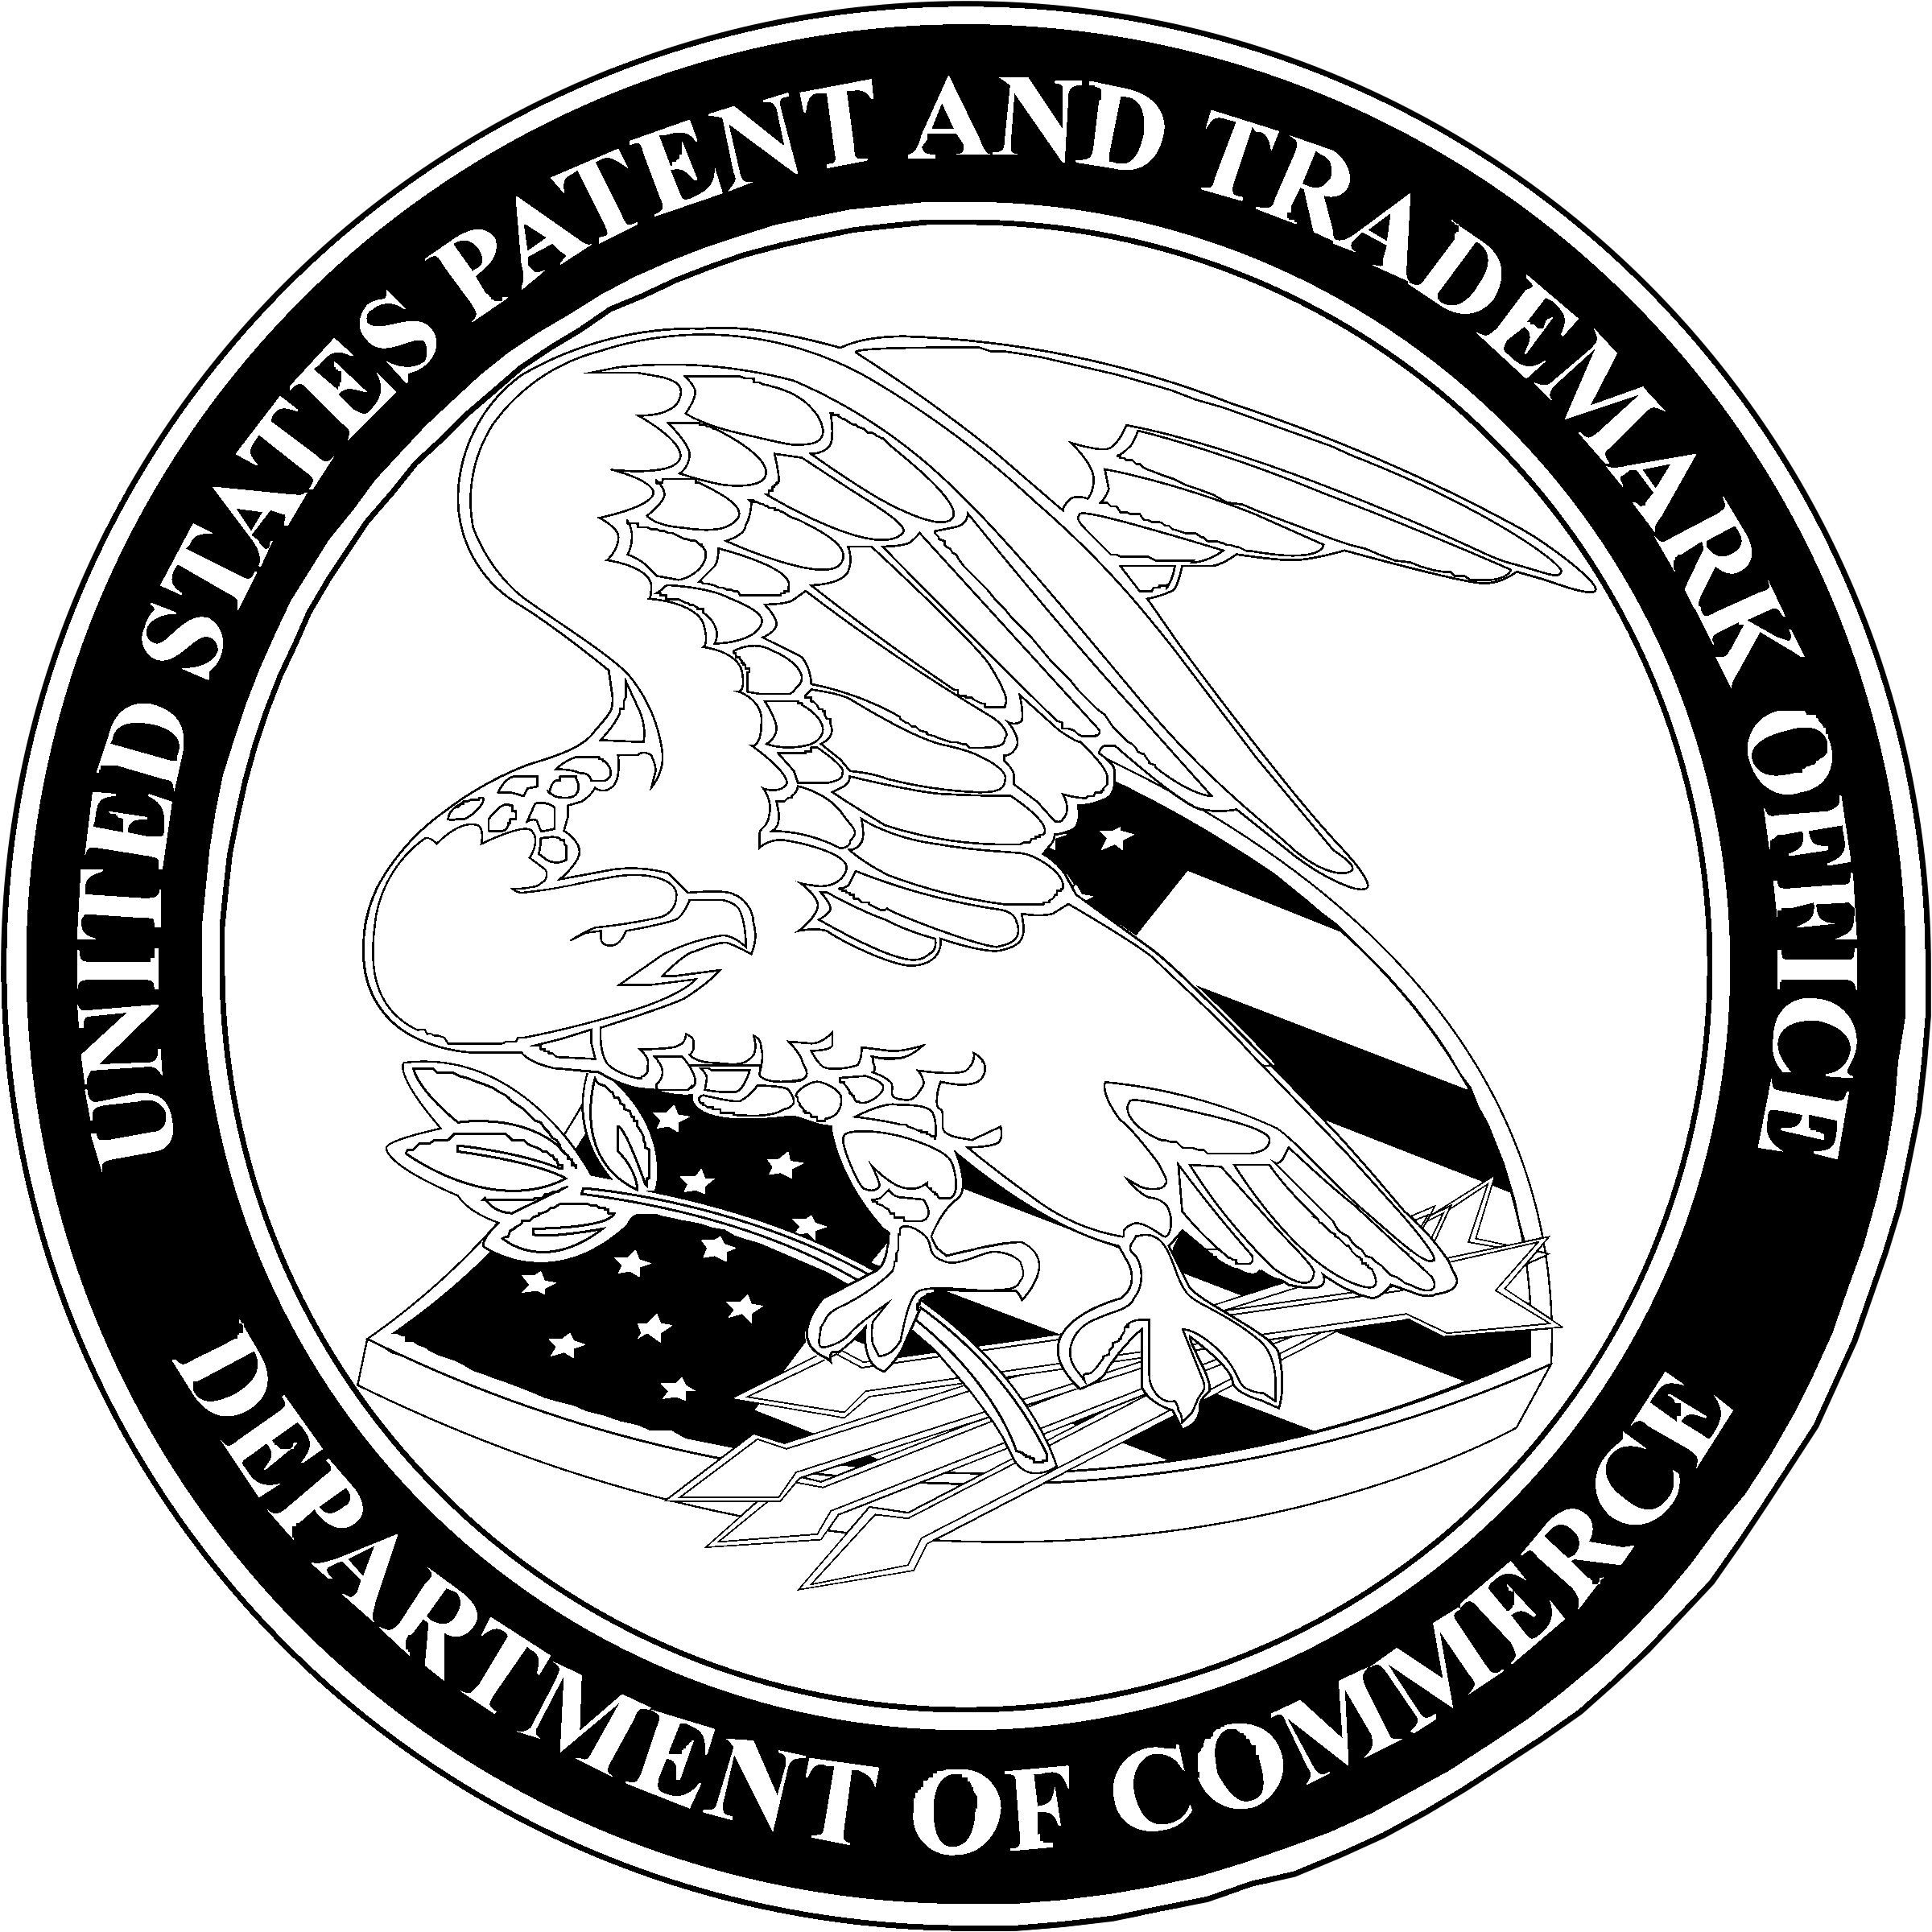 png transparent Us patent and office. Trademark vector.